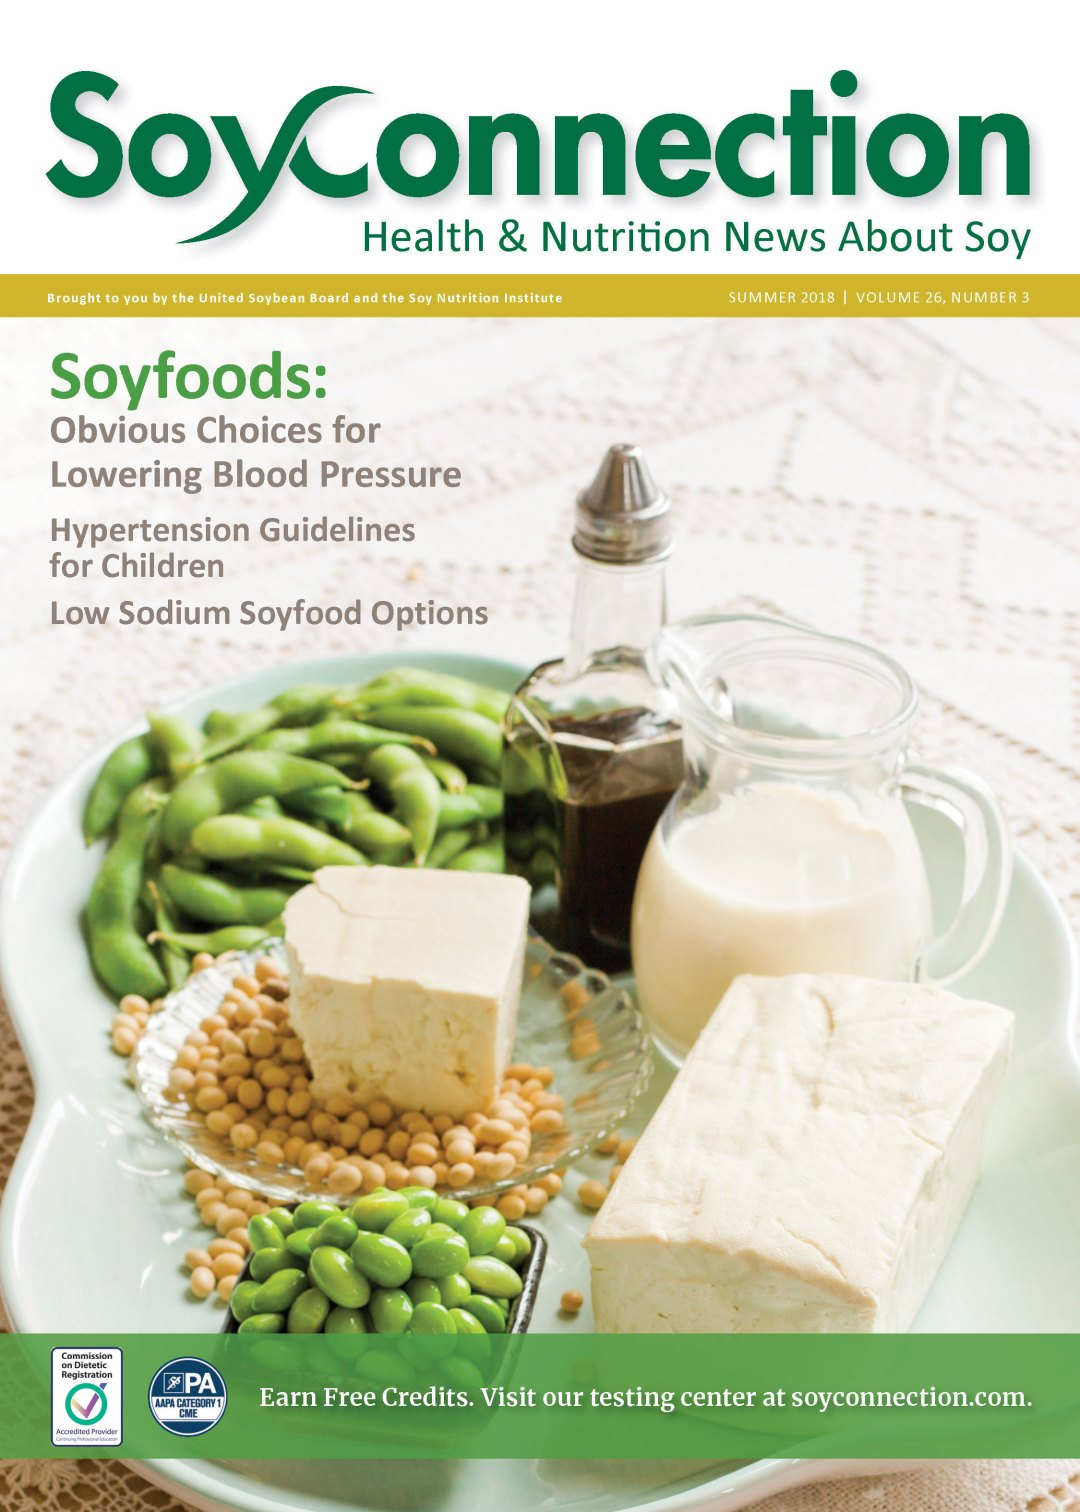 Soy ConnectionLowering Blood Pressure